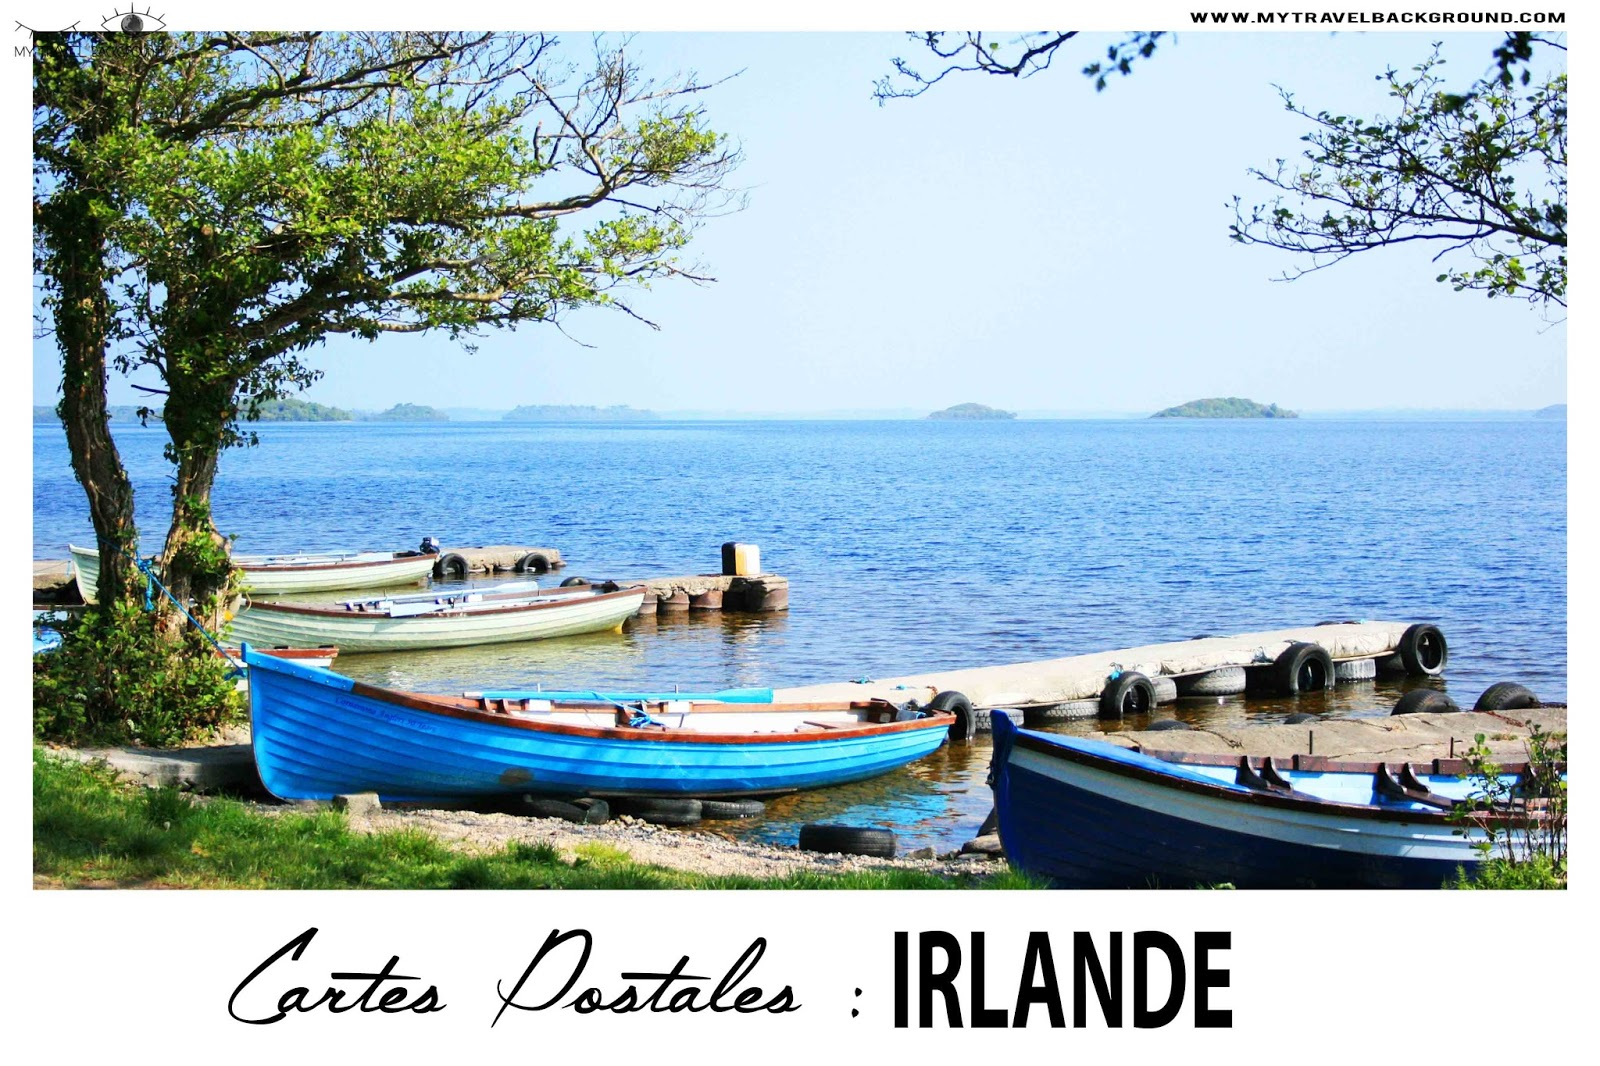 My Travel Background : Cartes Postale Irlande